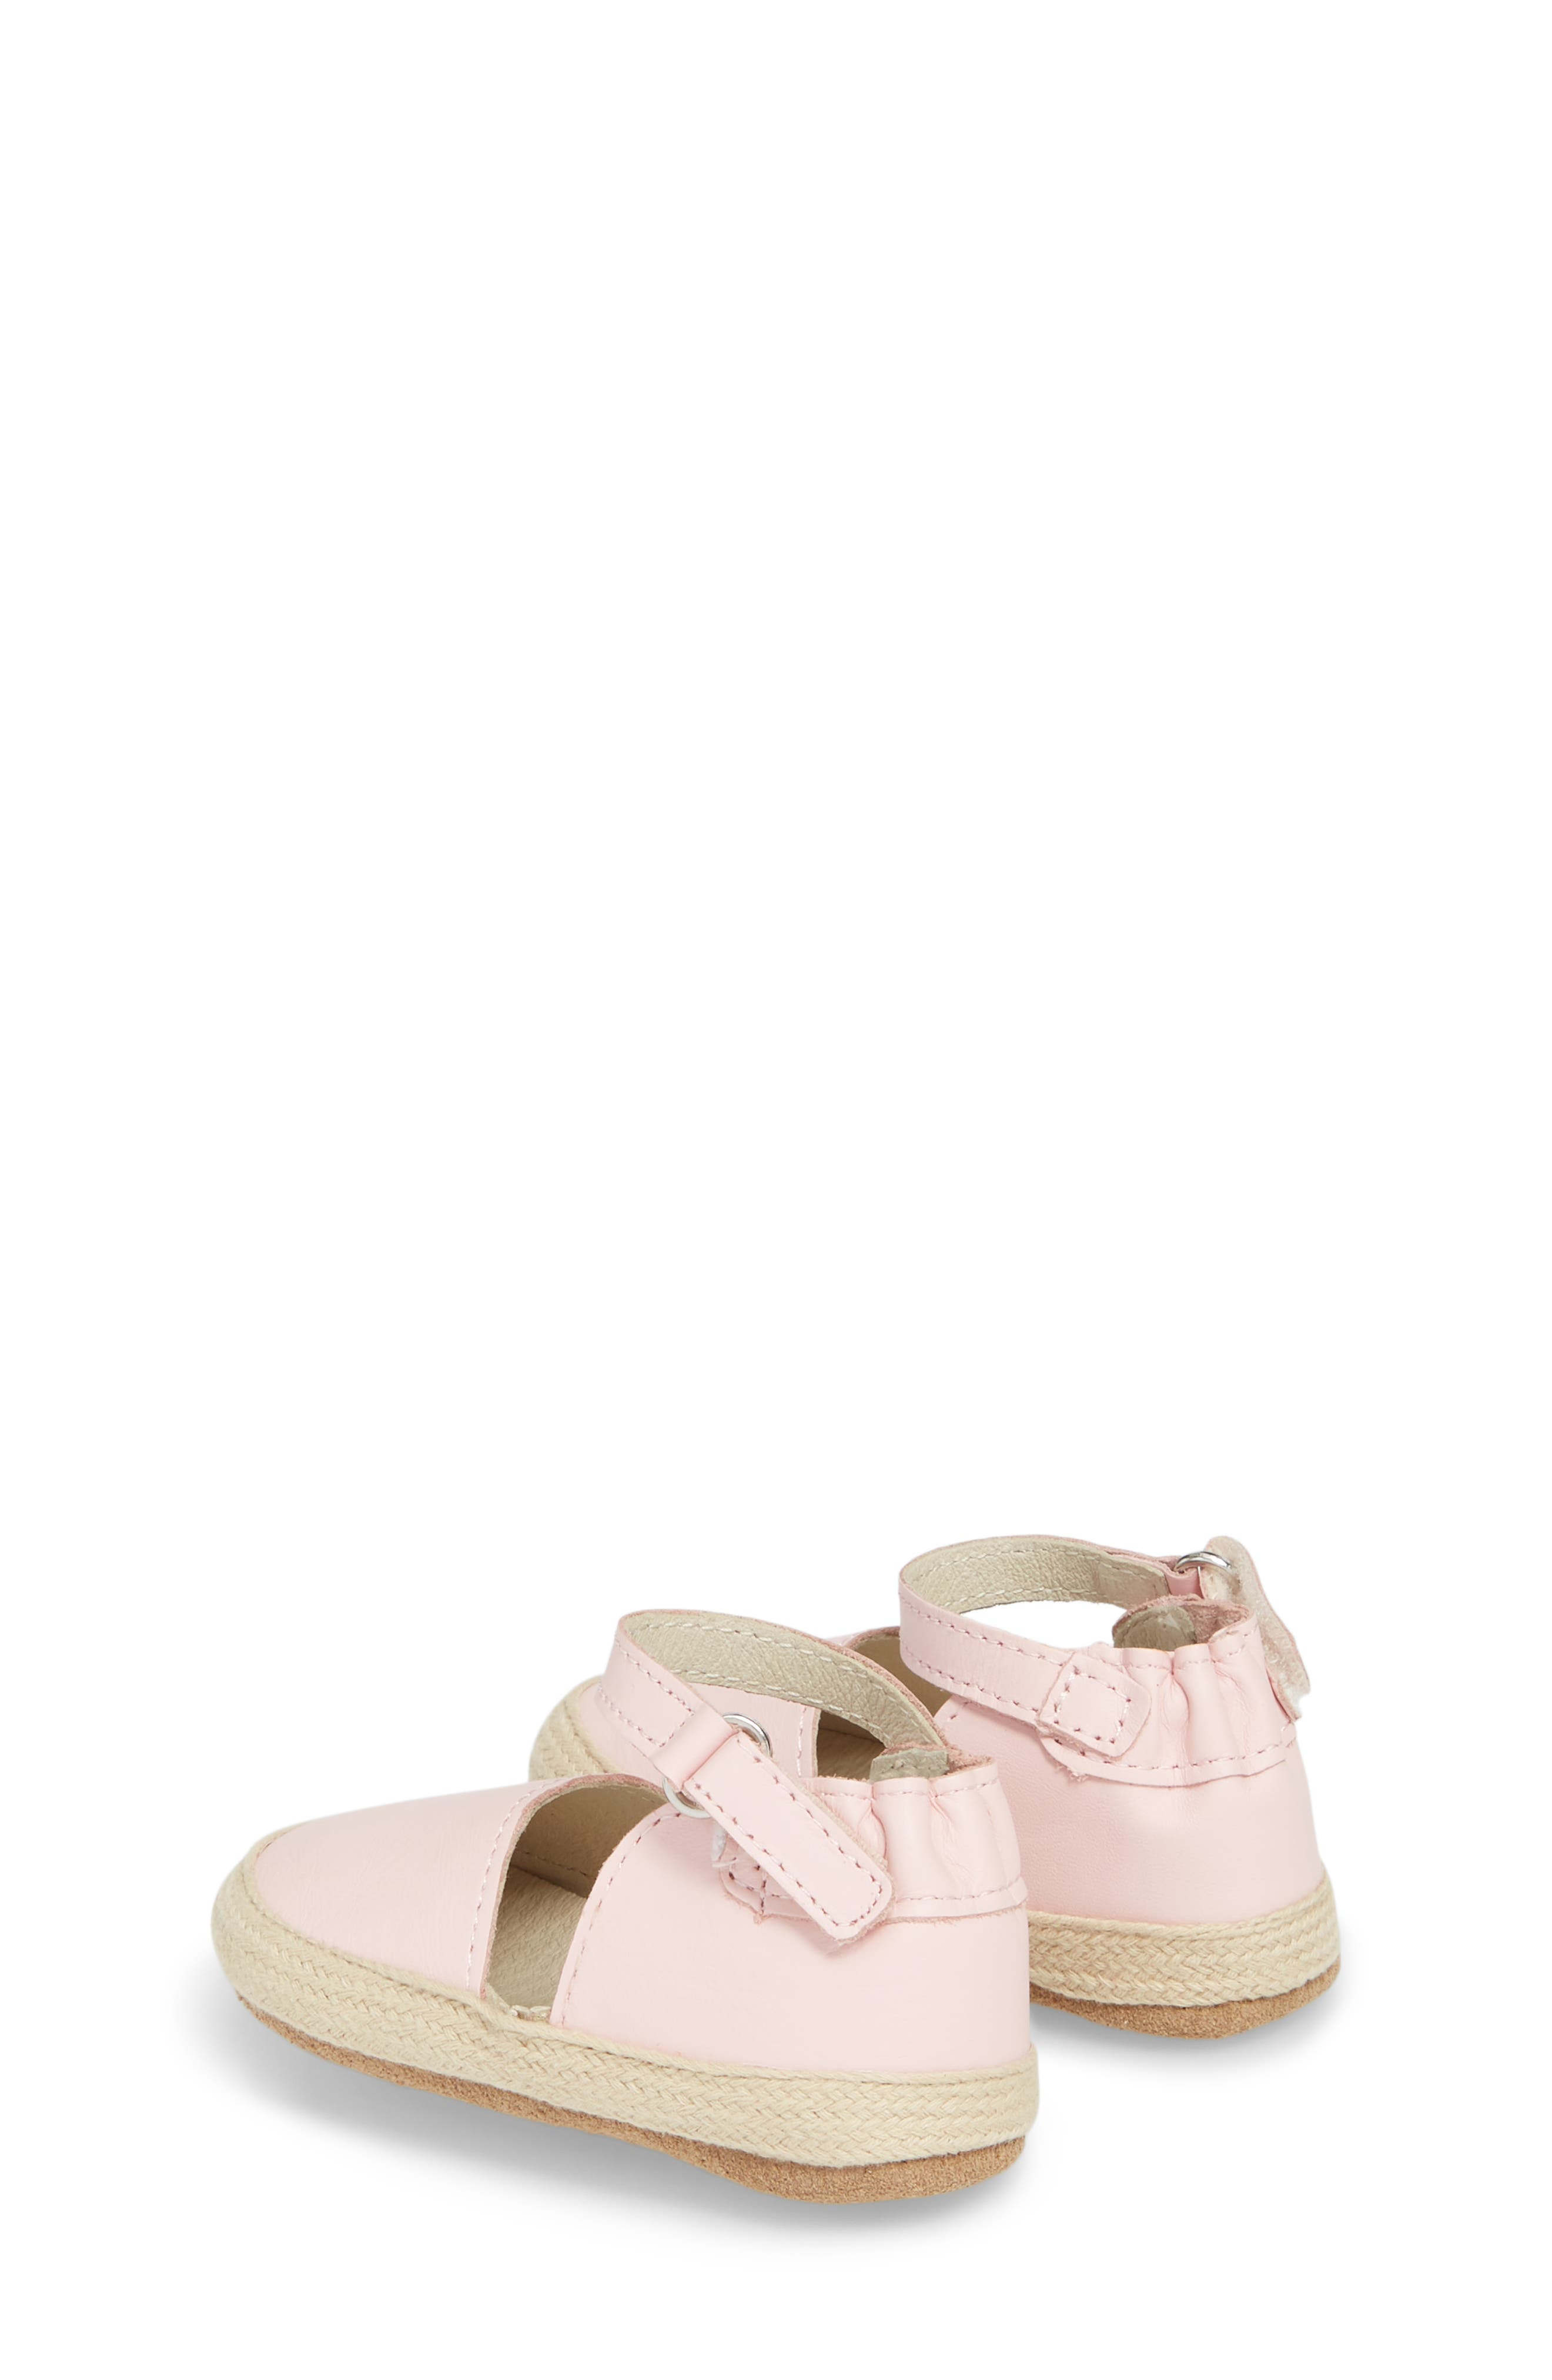 Kelly Soft Sole Espadrille Sandal,                             Alternate thumbnail 2, color,                             PINK